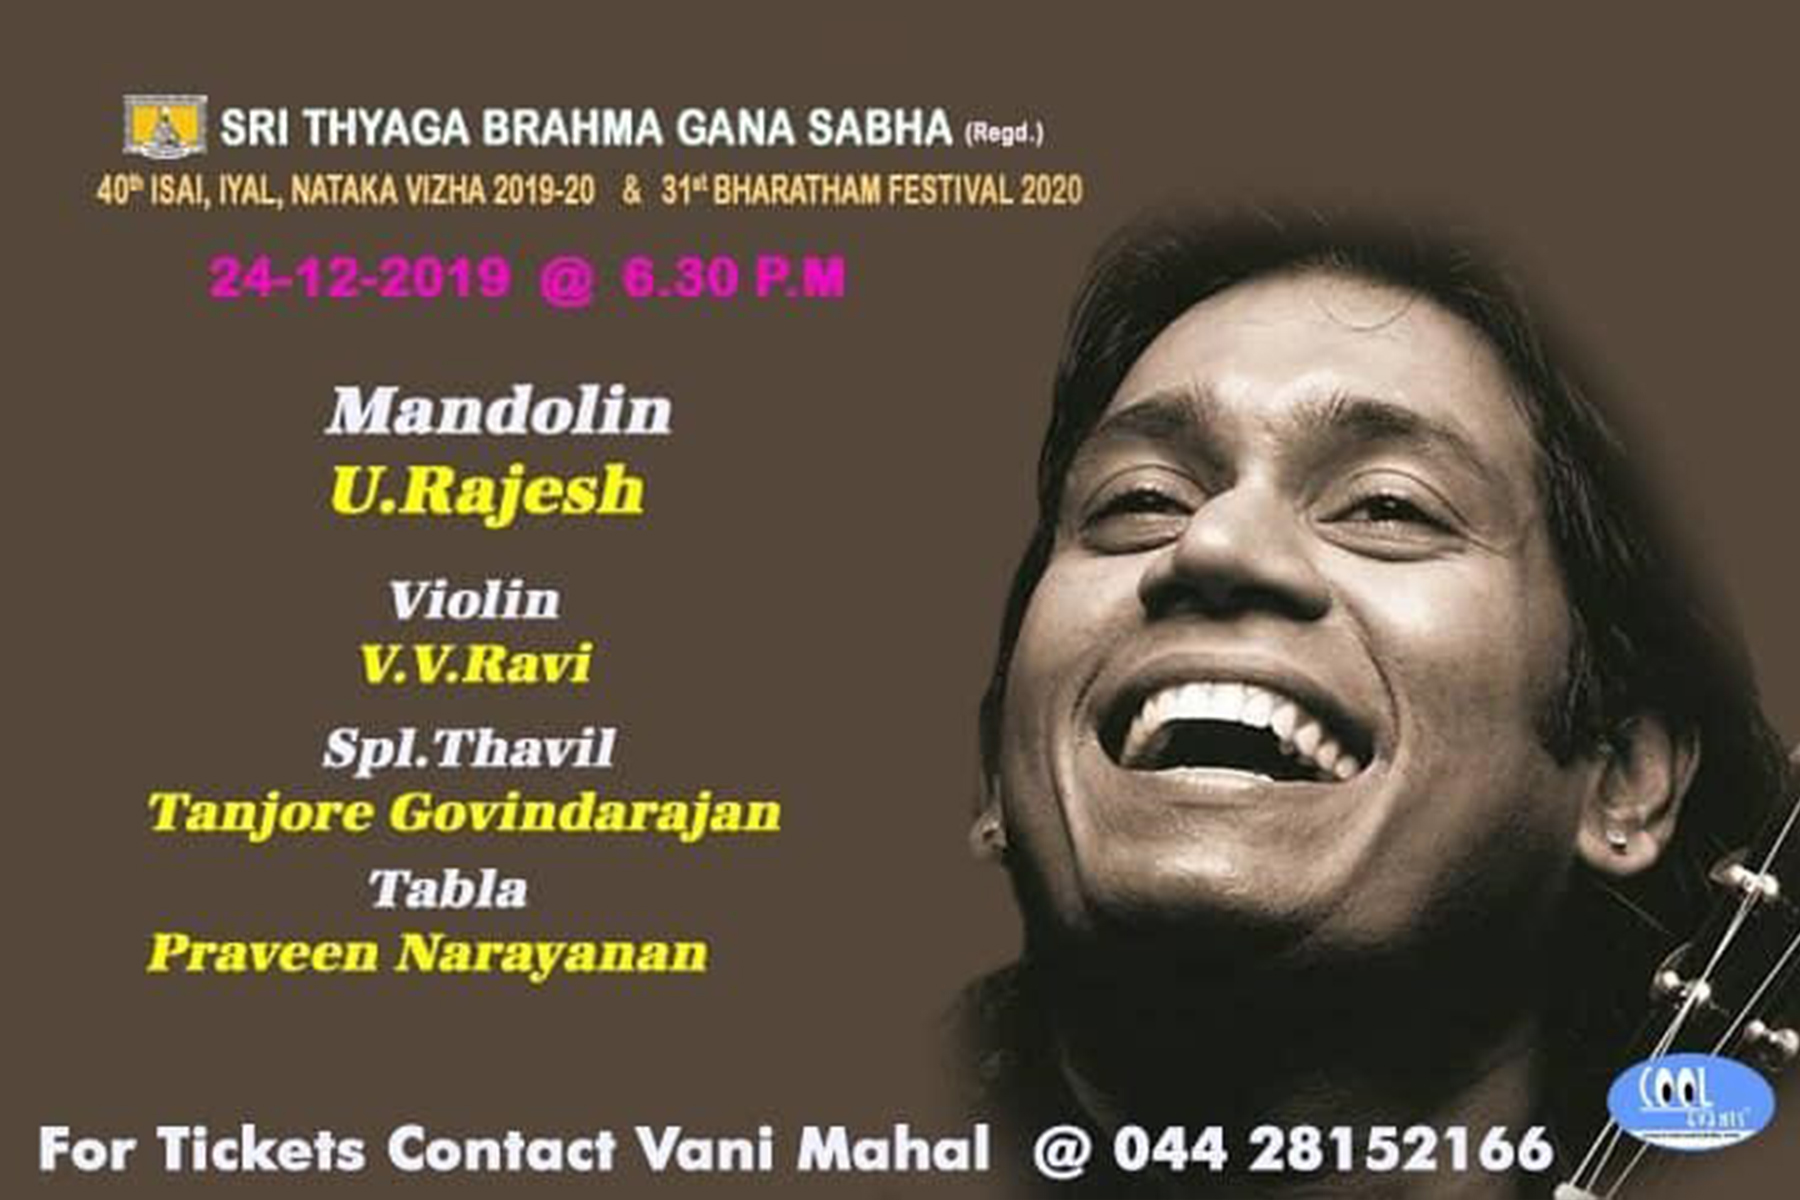 mandolin-rajesh-performing-tonight-at-vani-mahal